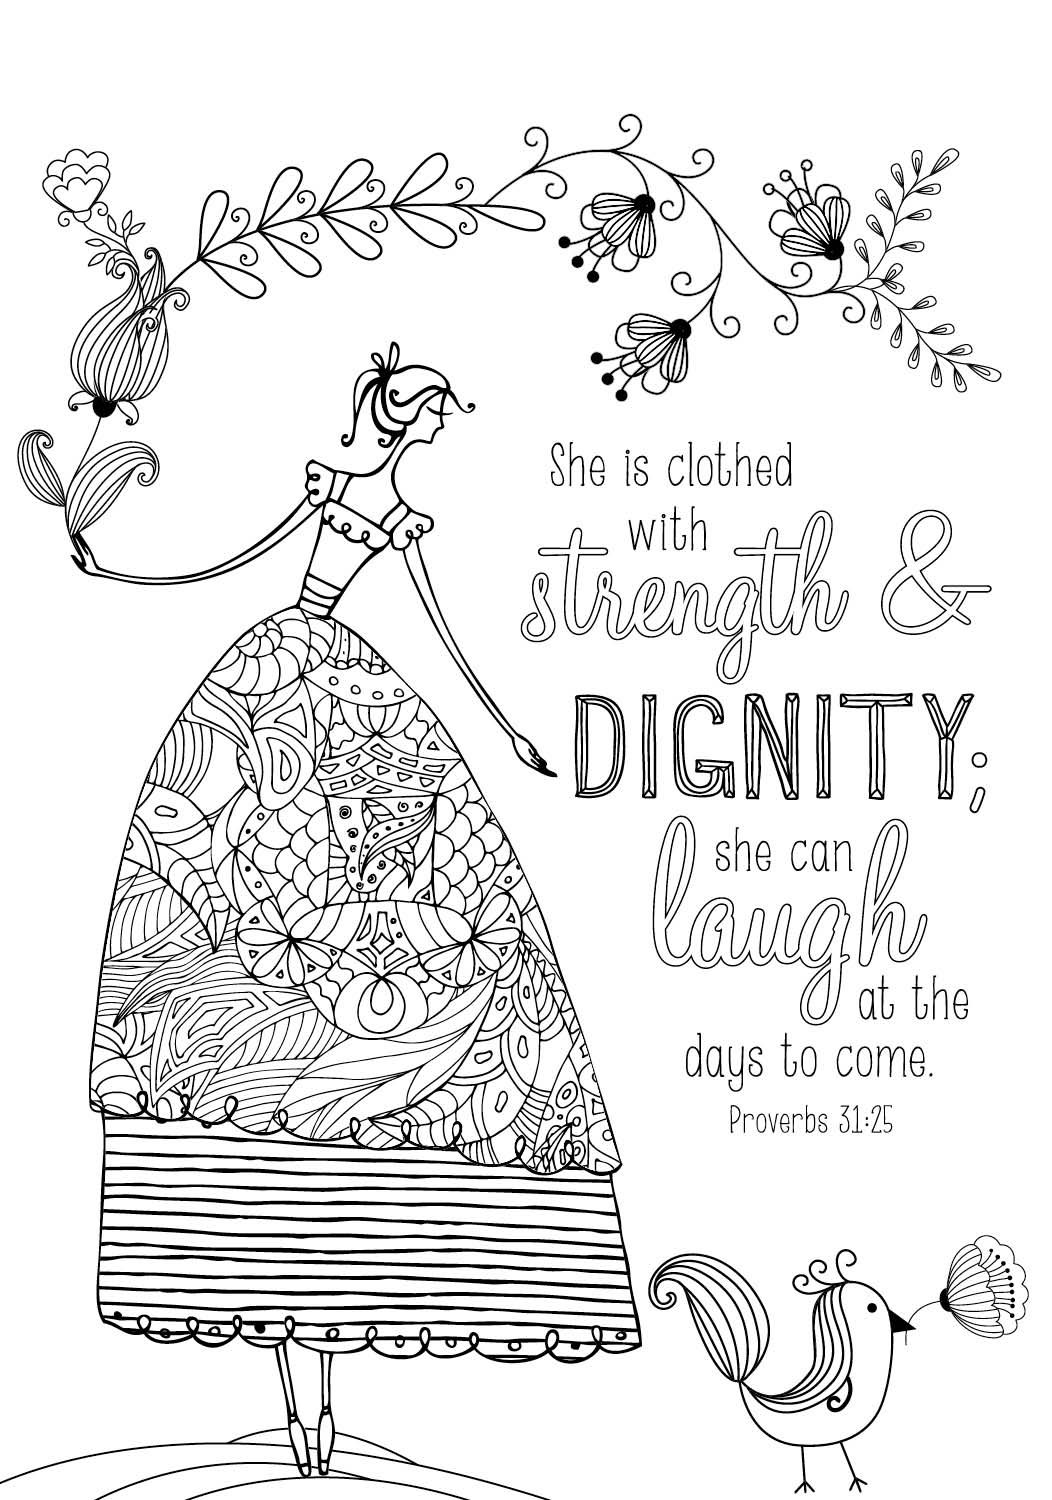 Coloring page from Coloring Book for Mom | gift ideas | Pinterest ...